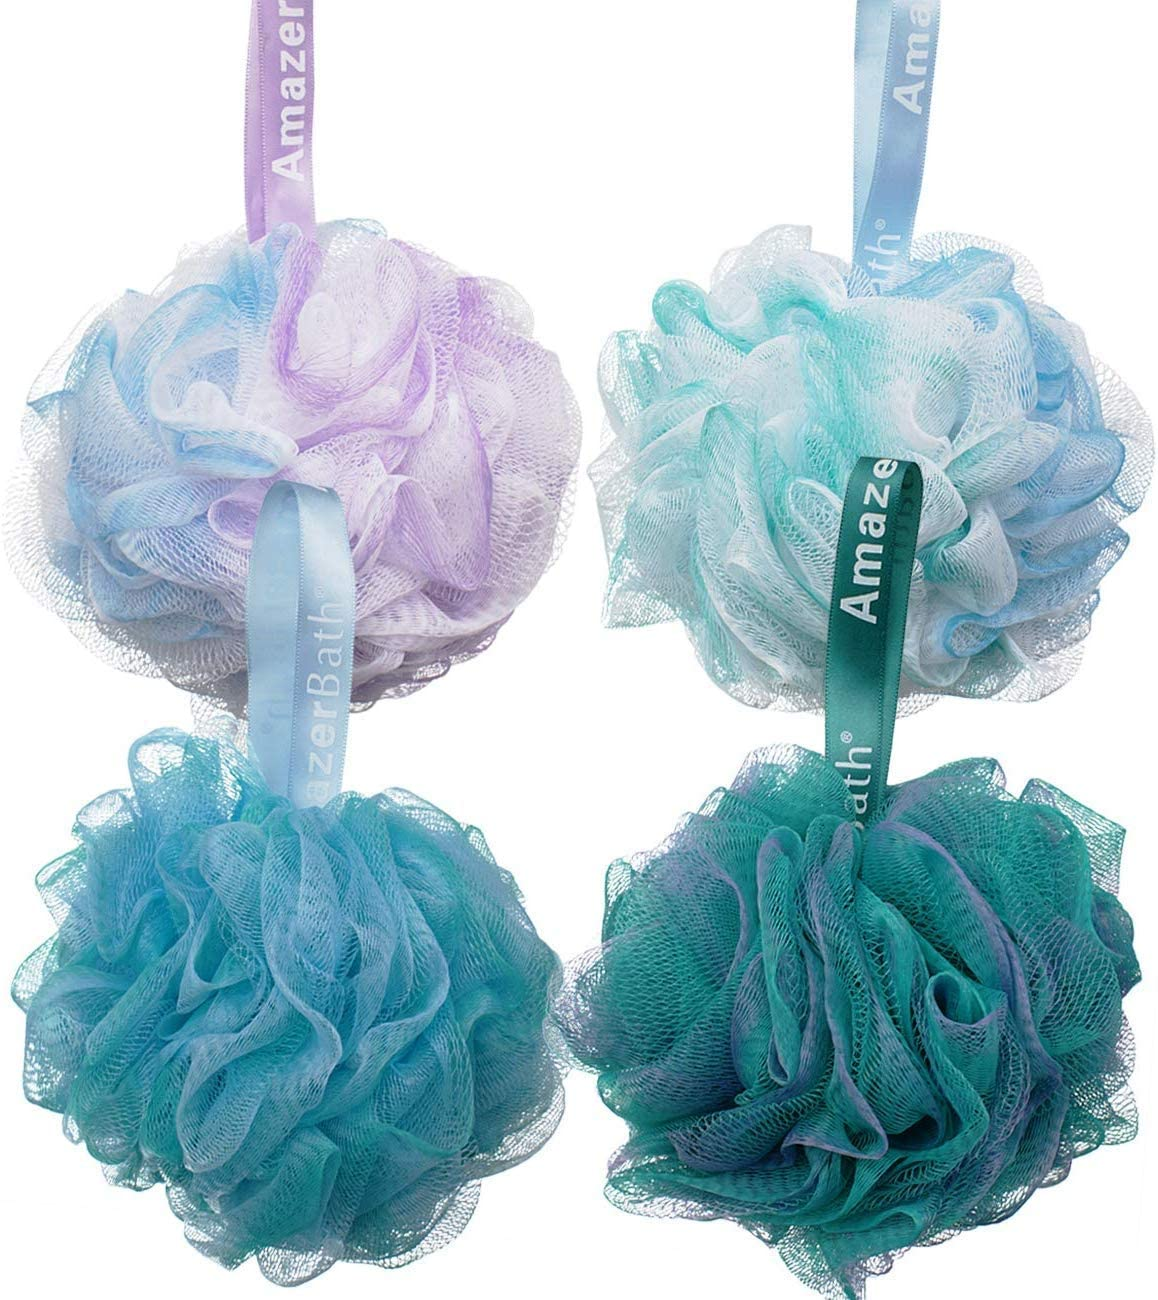 AmazerBath Shower Bath Sponge Shower Loofahs Balls 60g/PCS for Body Wash Bathroom Men Women- Set of 4 Flower Color Pack